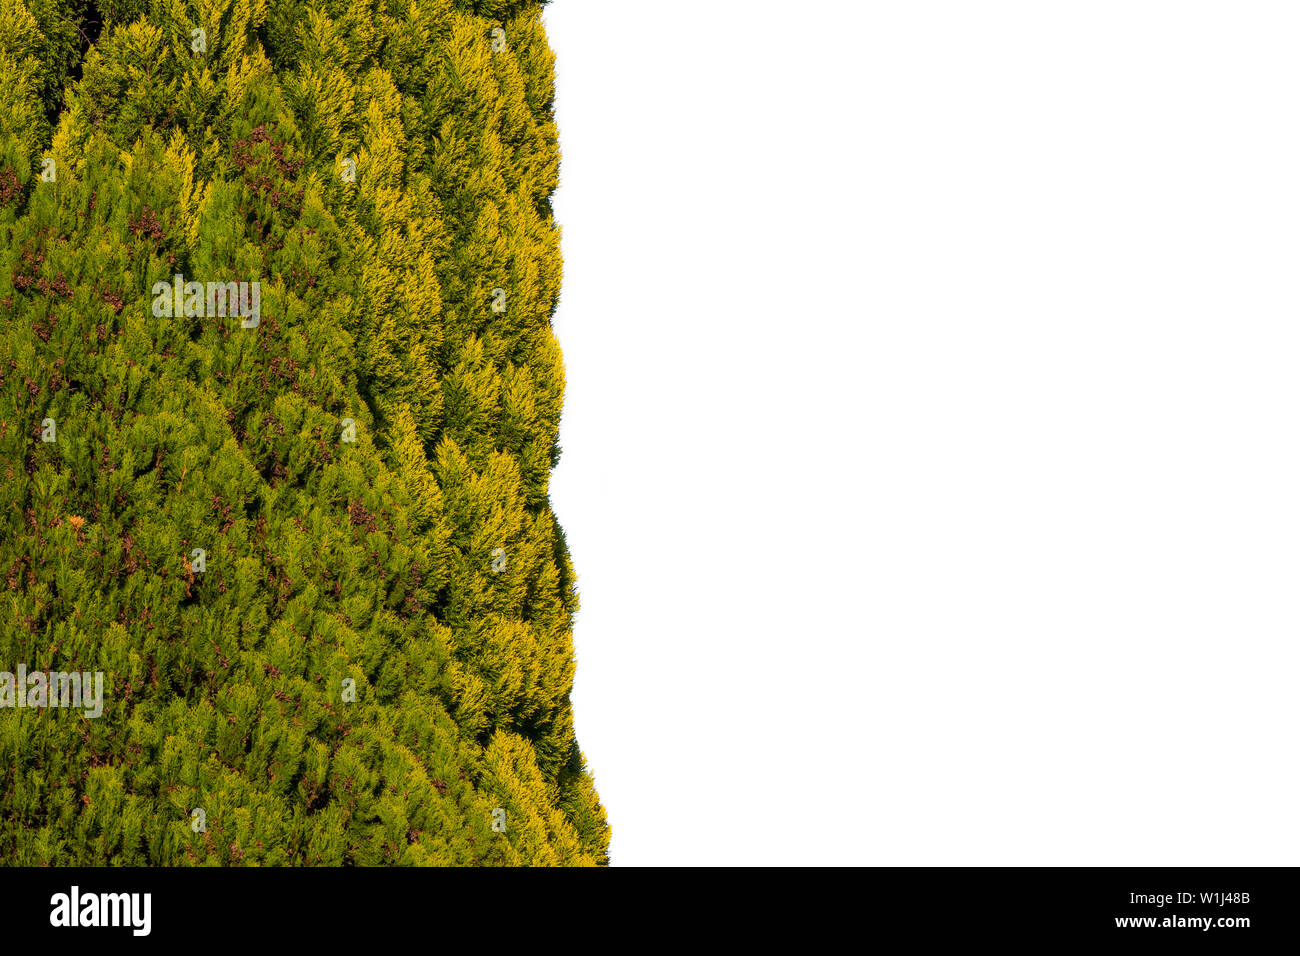 Thuja tree half concept, isolated on white. - Stock Image